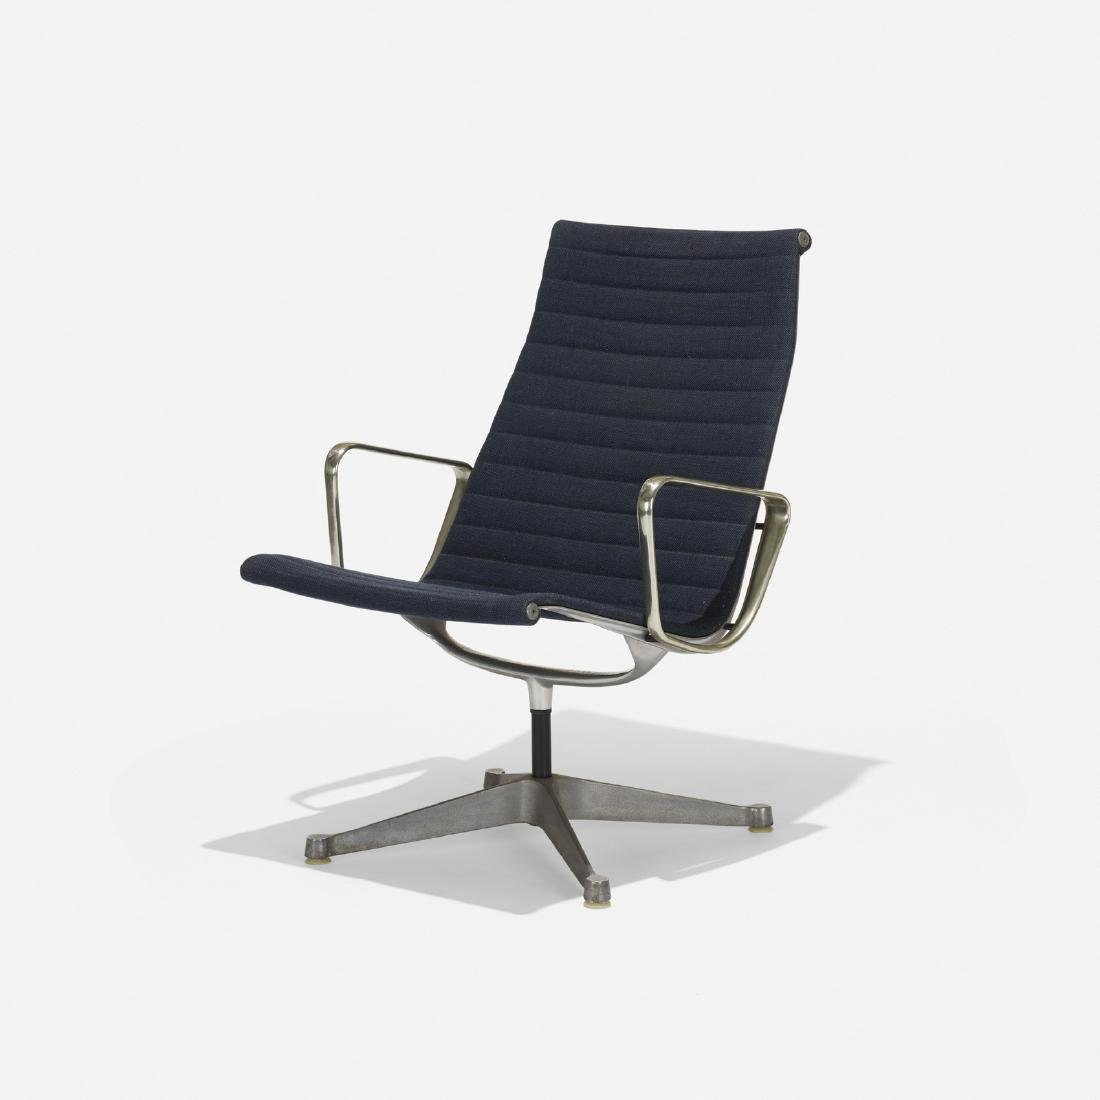 Charles and Ray Eames, Aluminum Group lounge chair